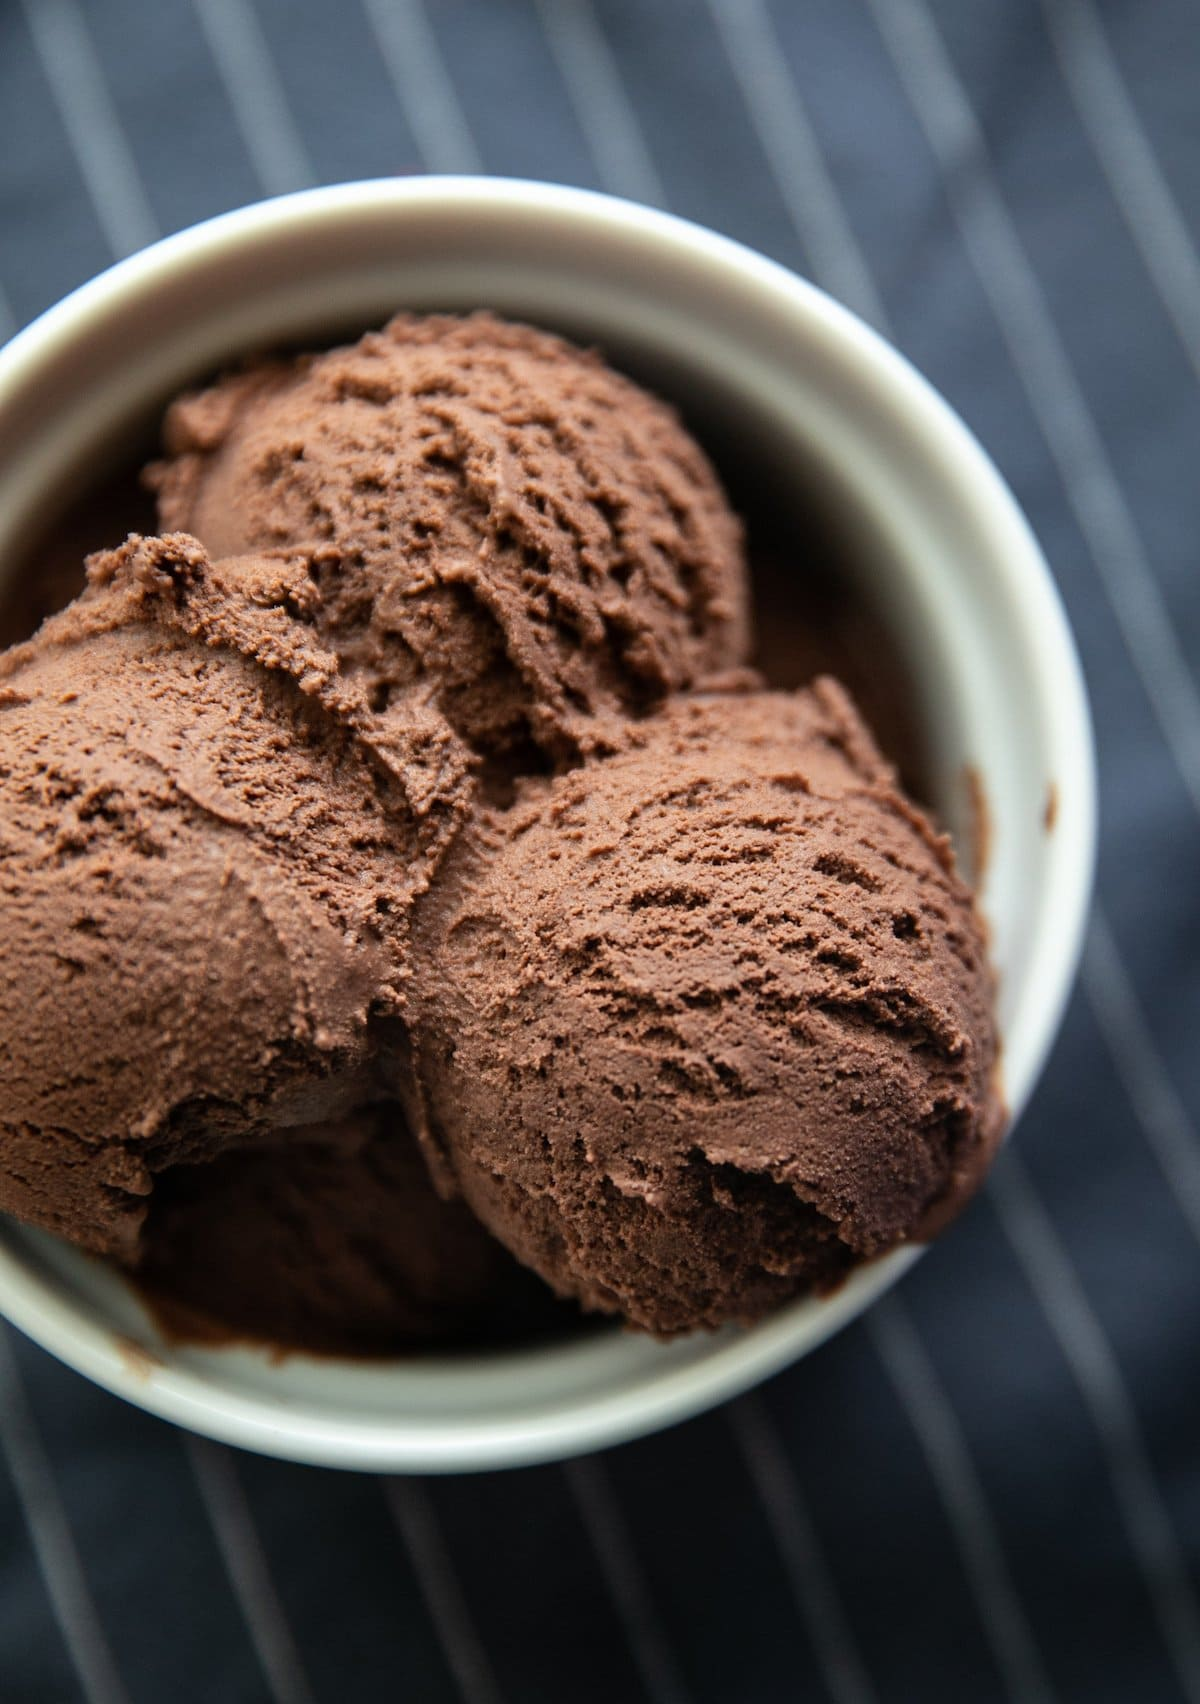 top down view of chocolate ice cream scoops in a white bowl